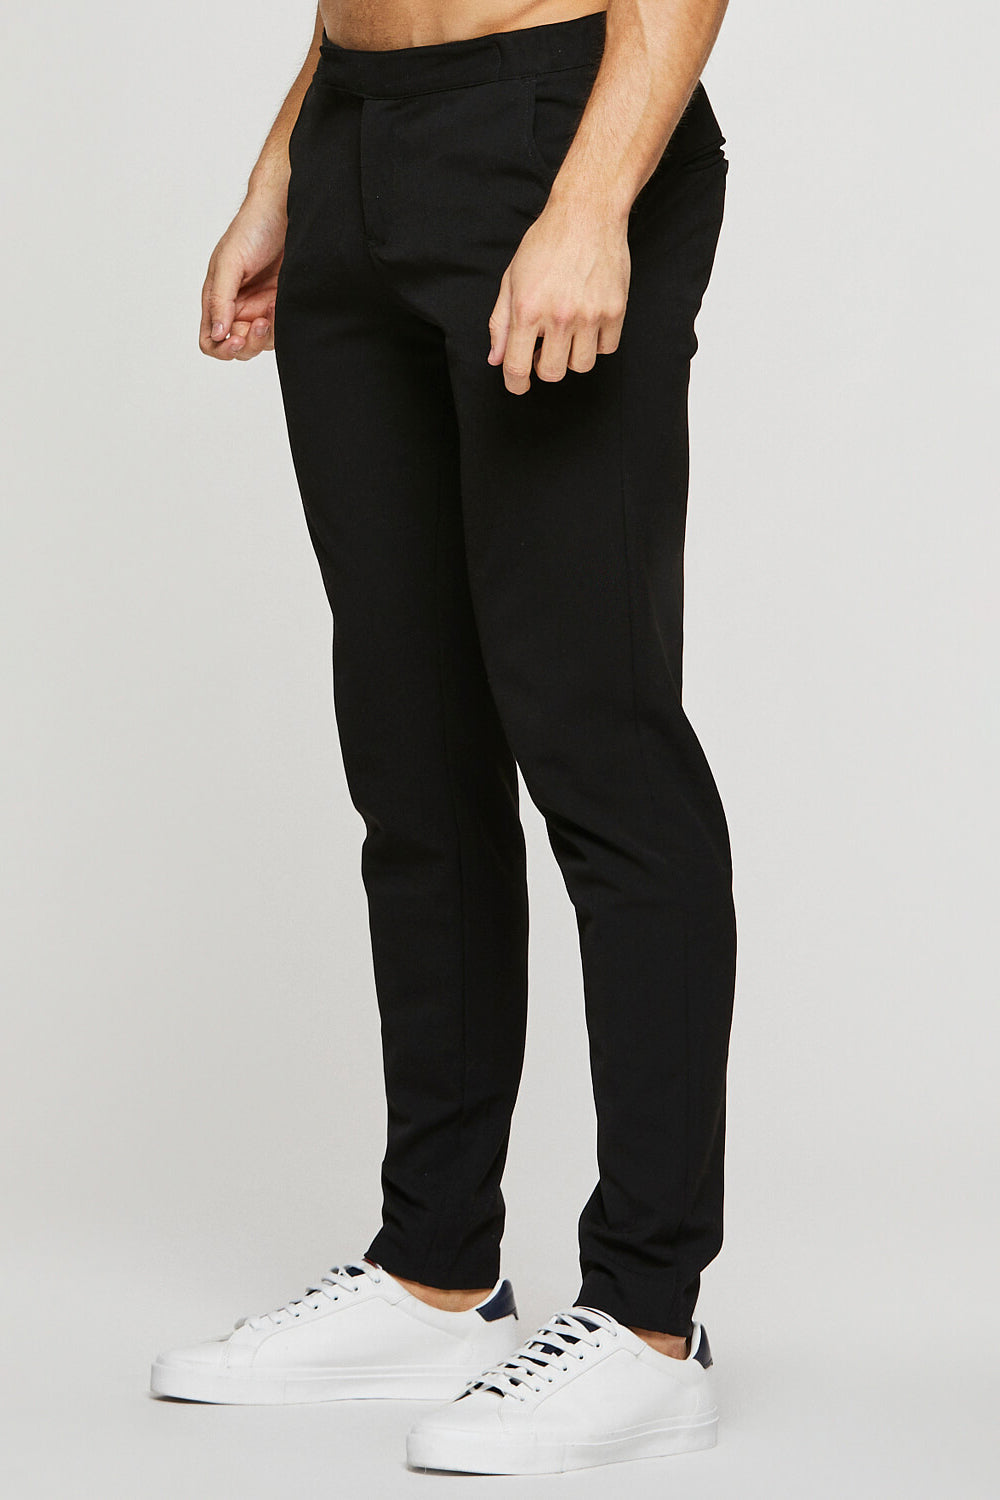 365 Trousers in Black